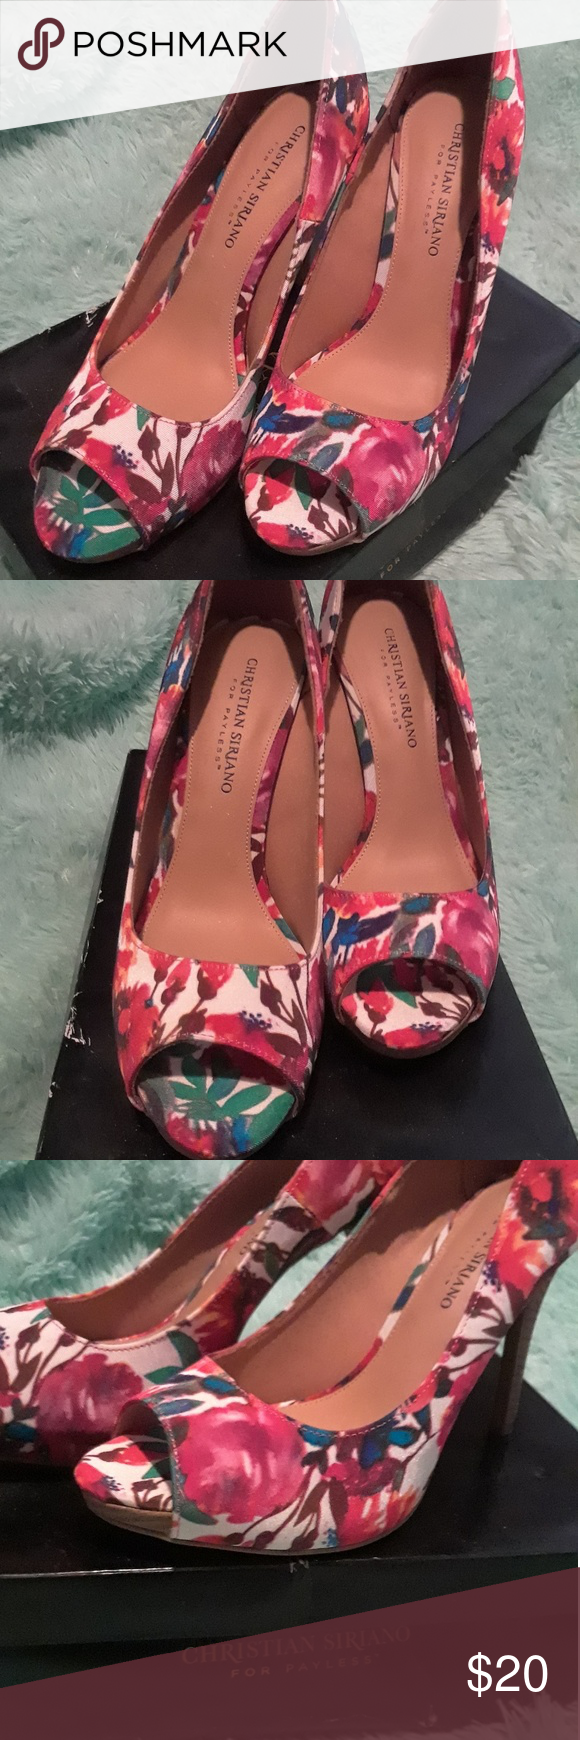 4514f70c055 Christian Siriano for Payless Floral Heels Open toe heels. Floral ...